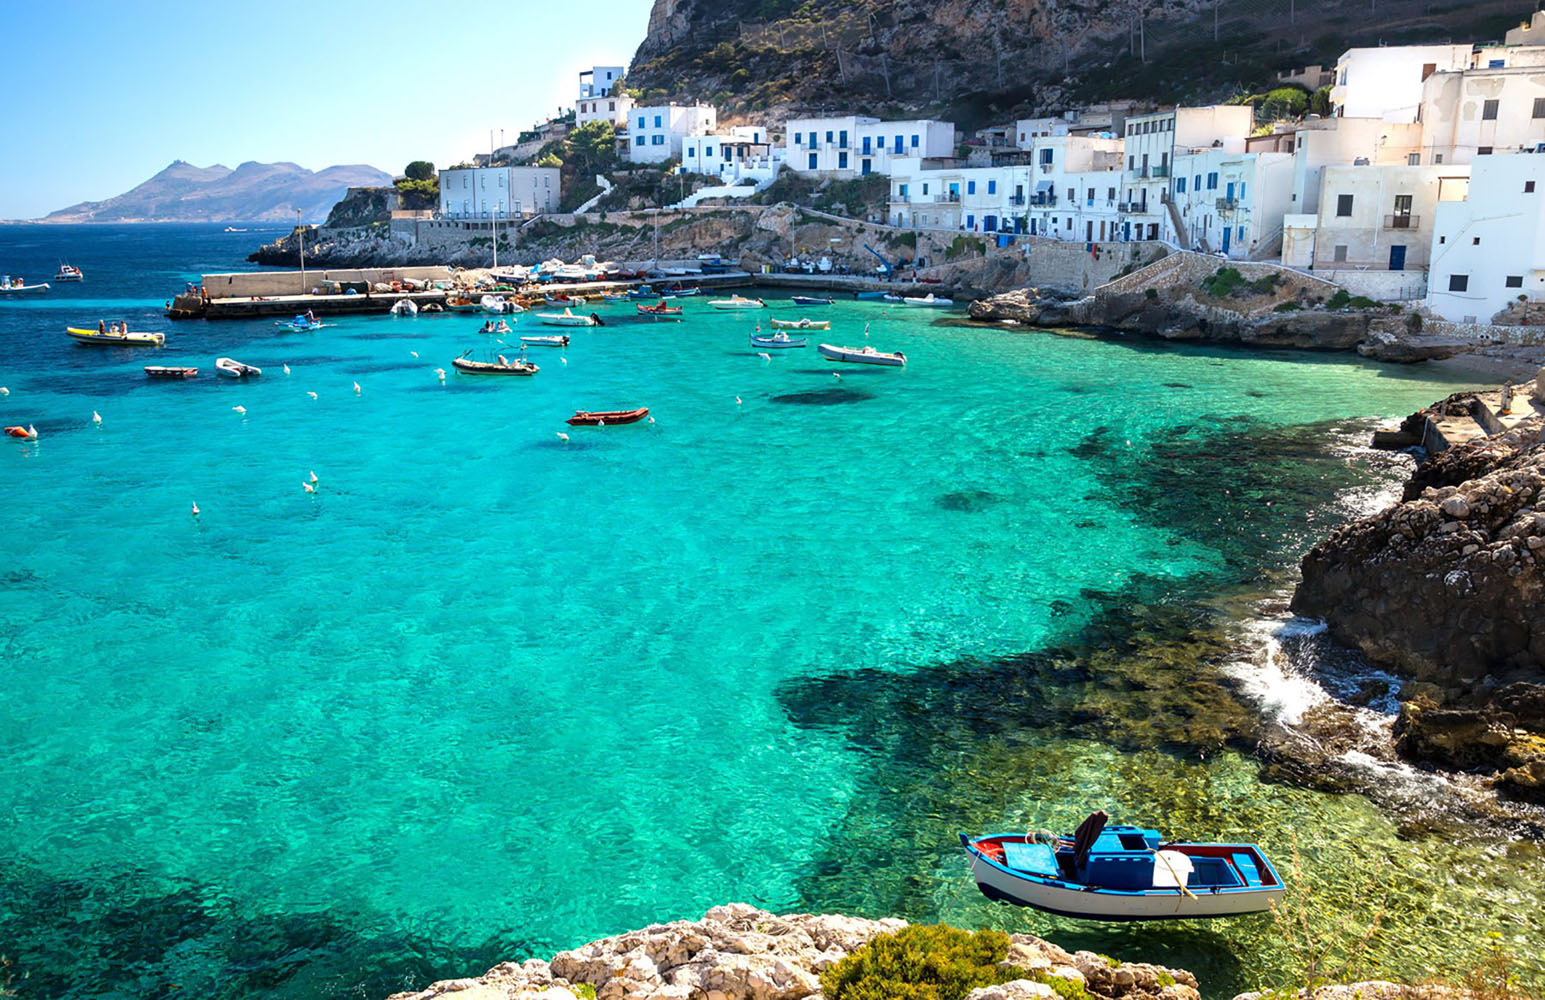 Levanzo Island with boats in the harbor.